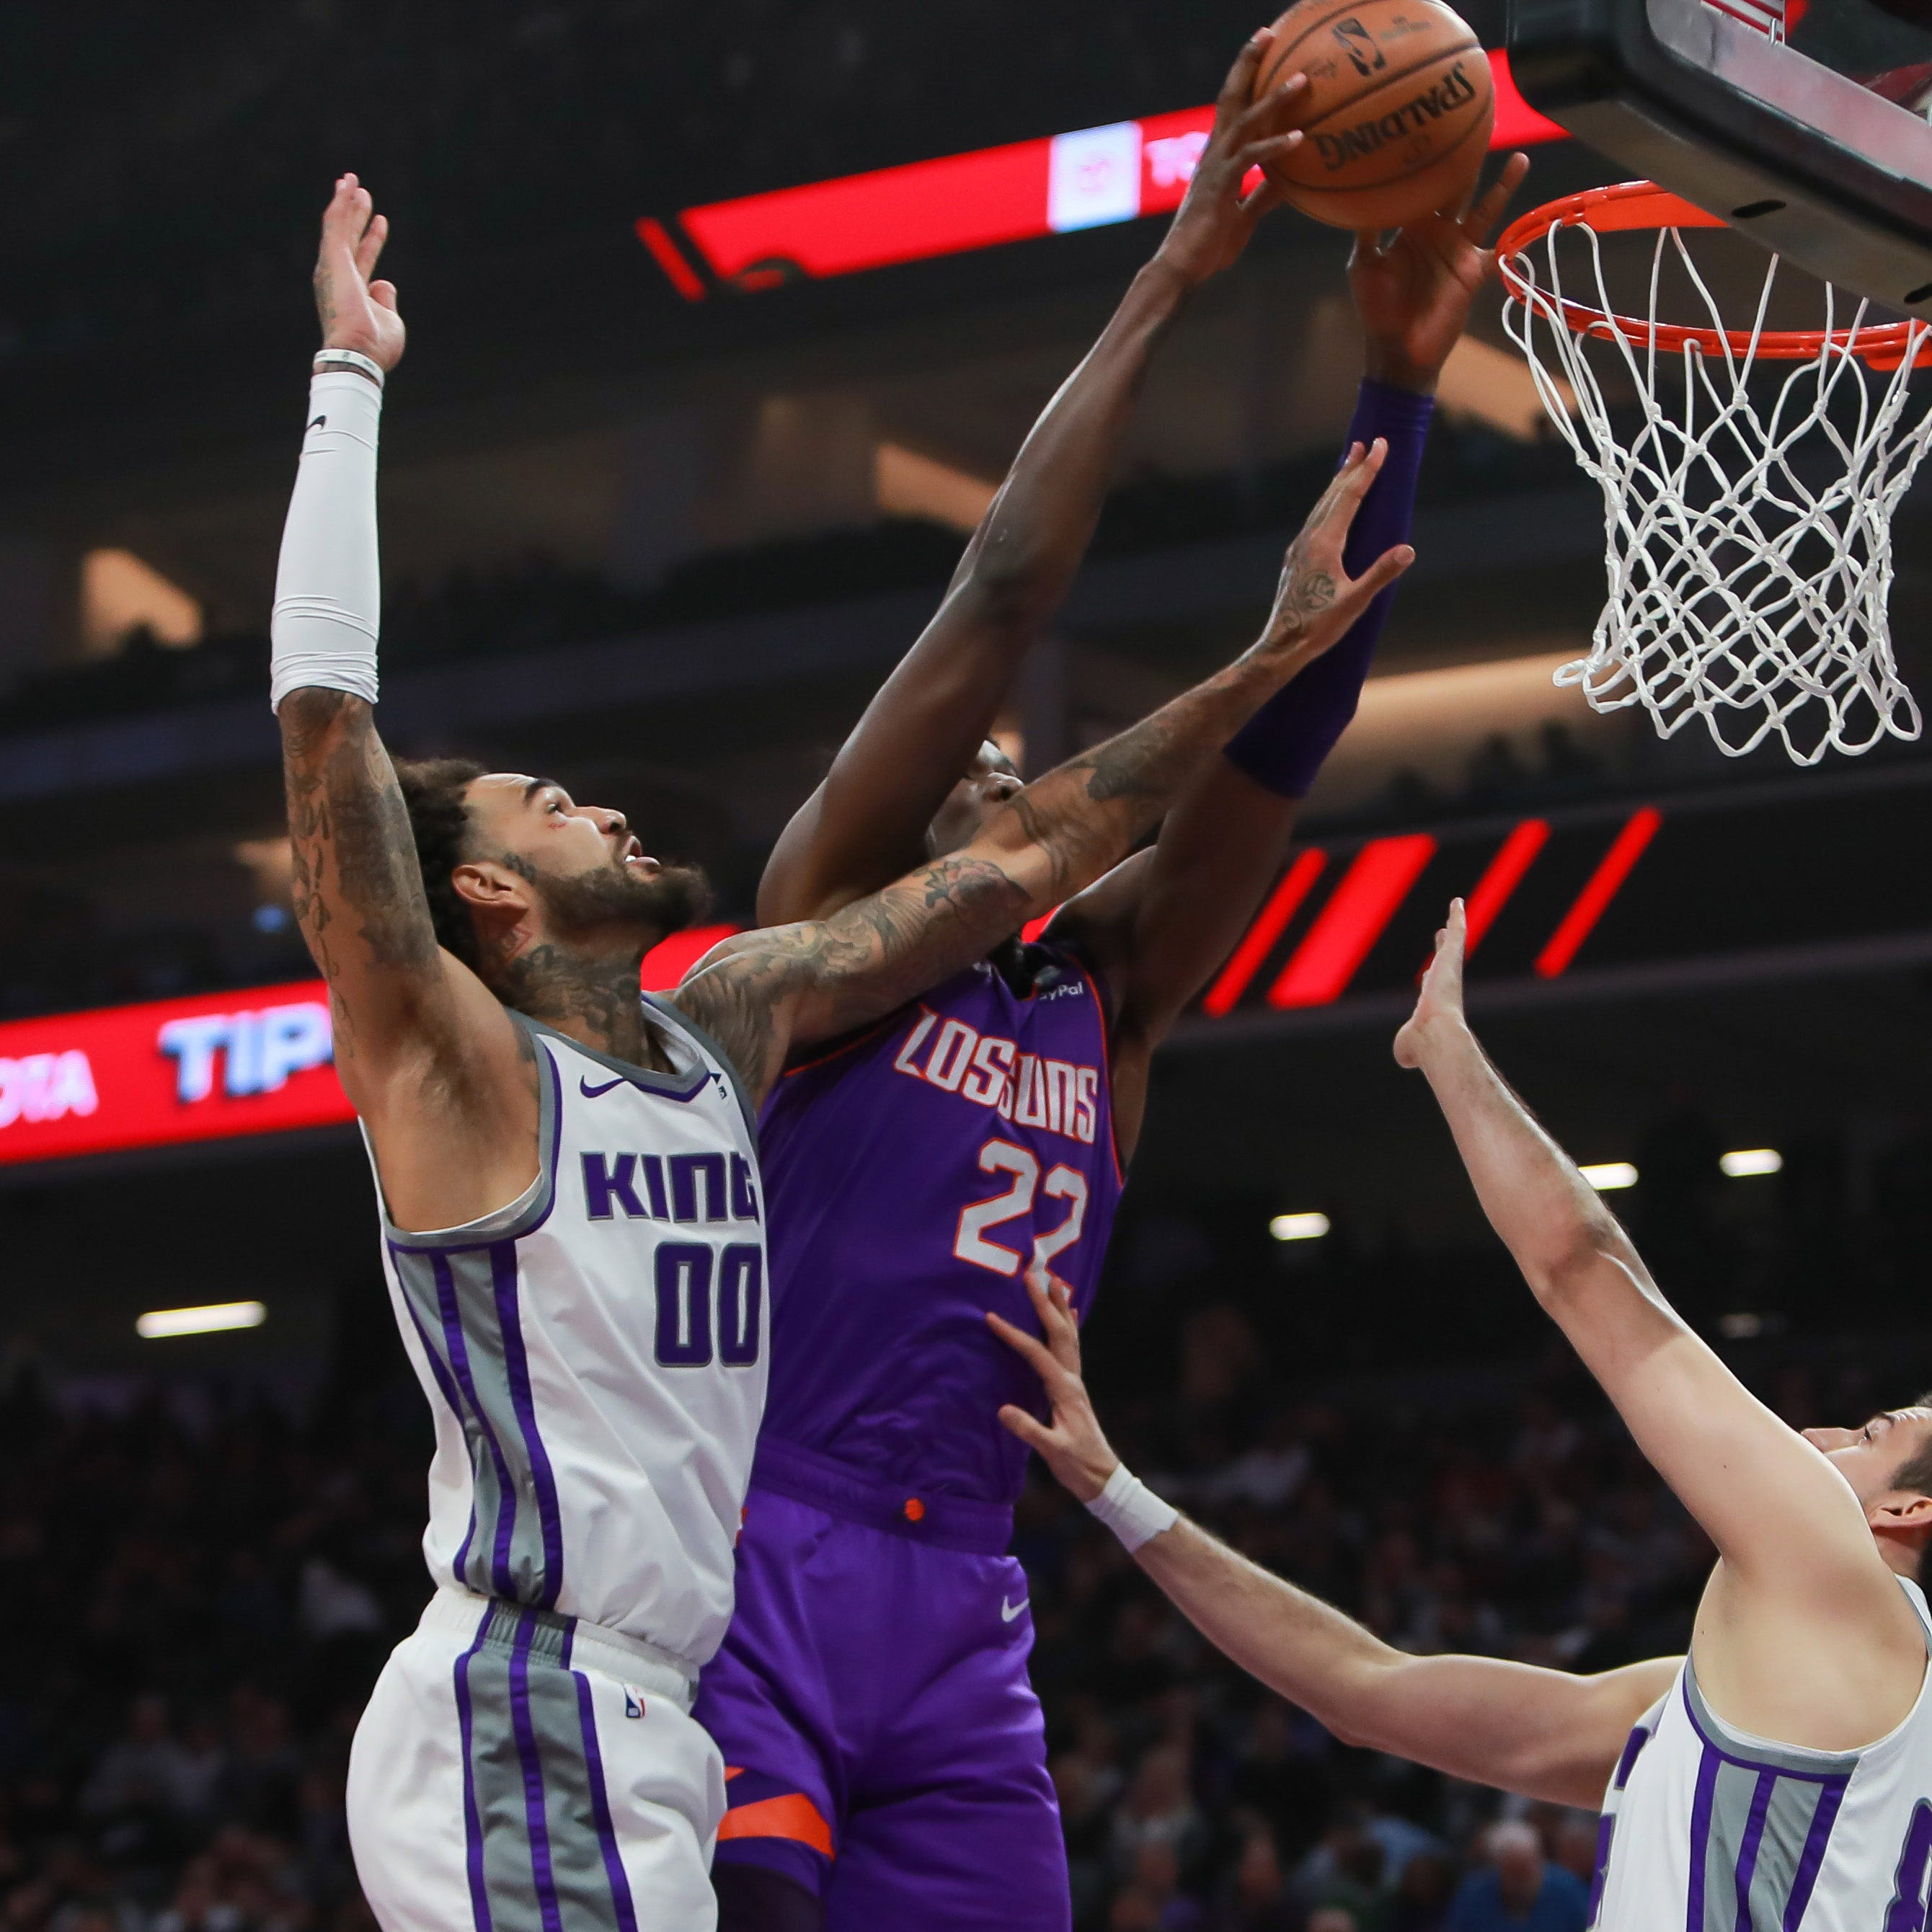 Suns' Deandre Ayton 'will be ready' for Utah after posting his 'worst game' against Jazz